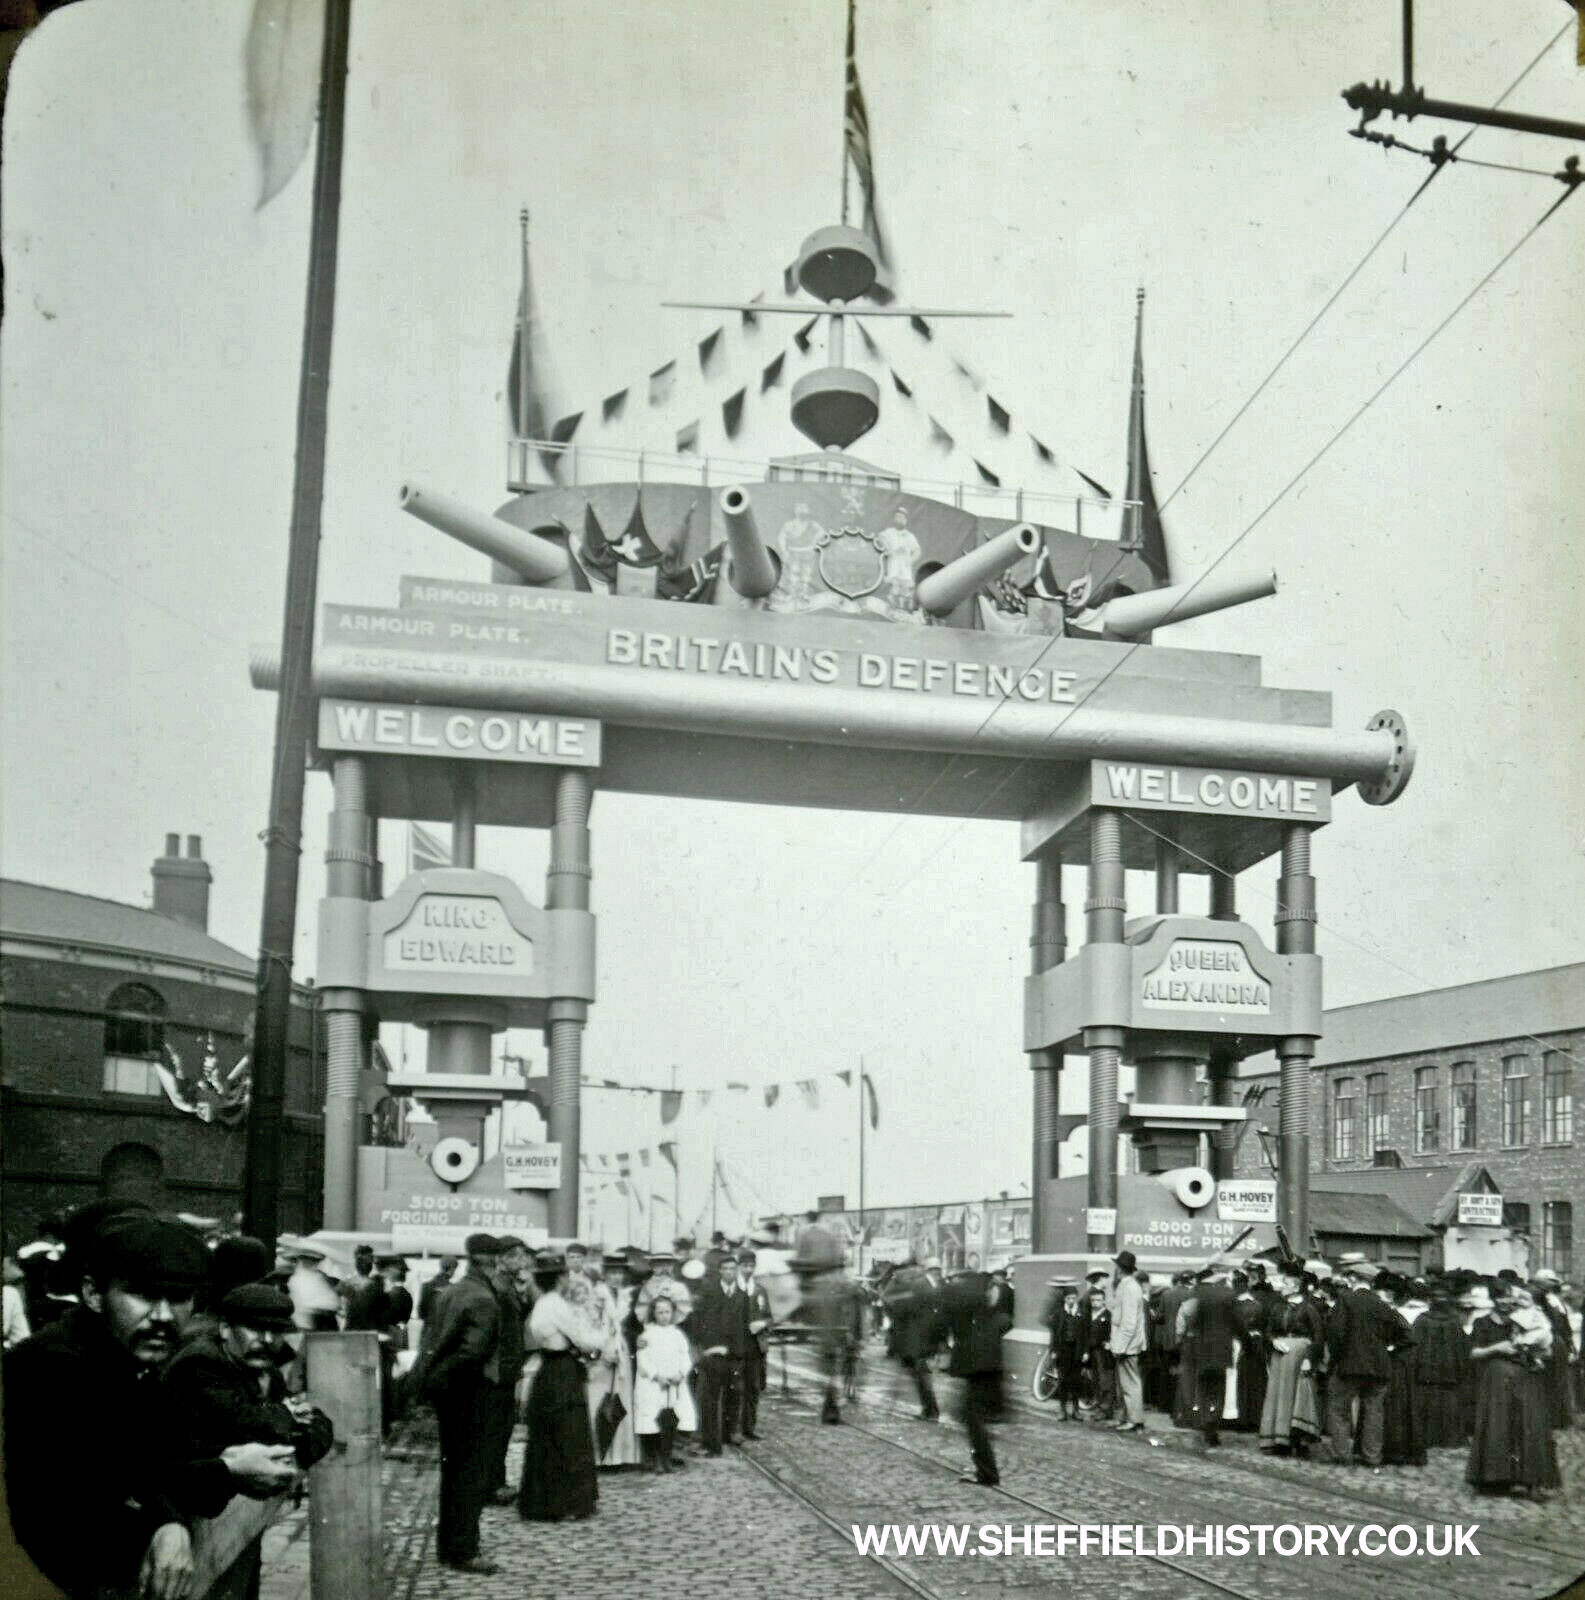 King Edward Queen Alexandra visit to Sheffield - The Armour Plate Archway